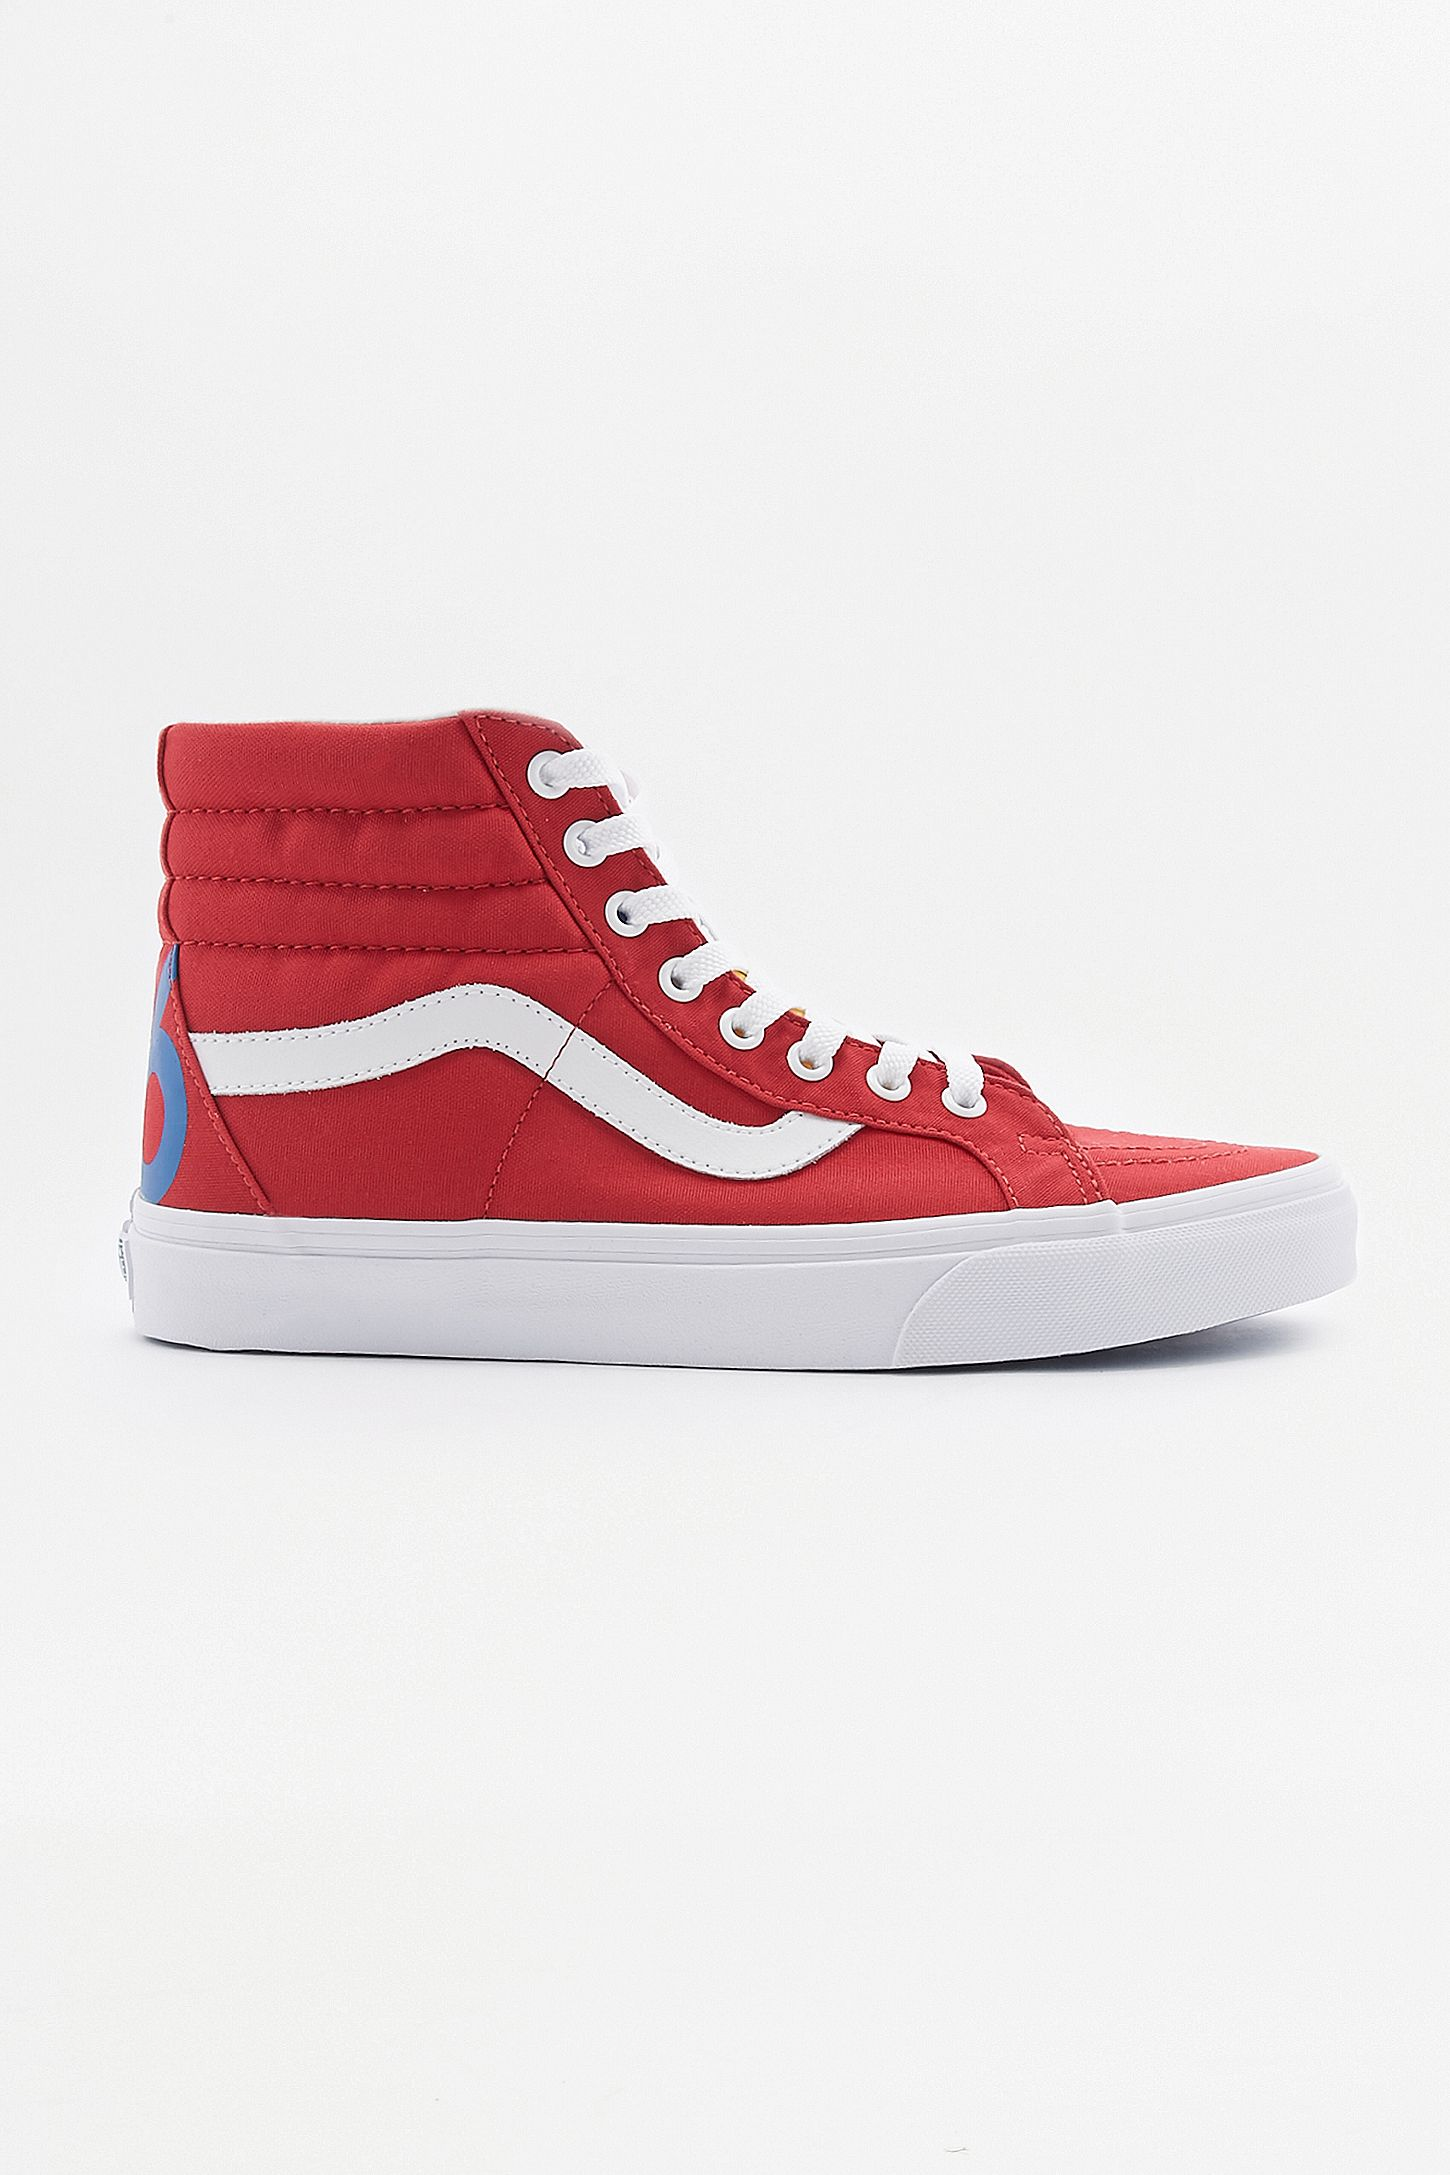 32b629bf8e75 Vans Sk8 Hi Reissue 1966 Red Trainers